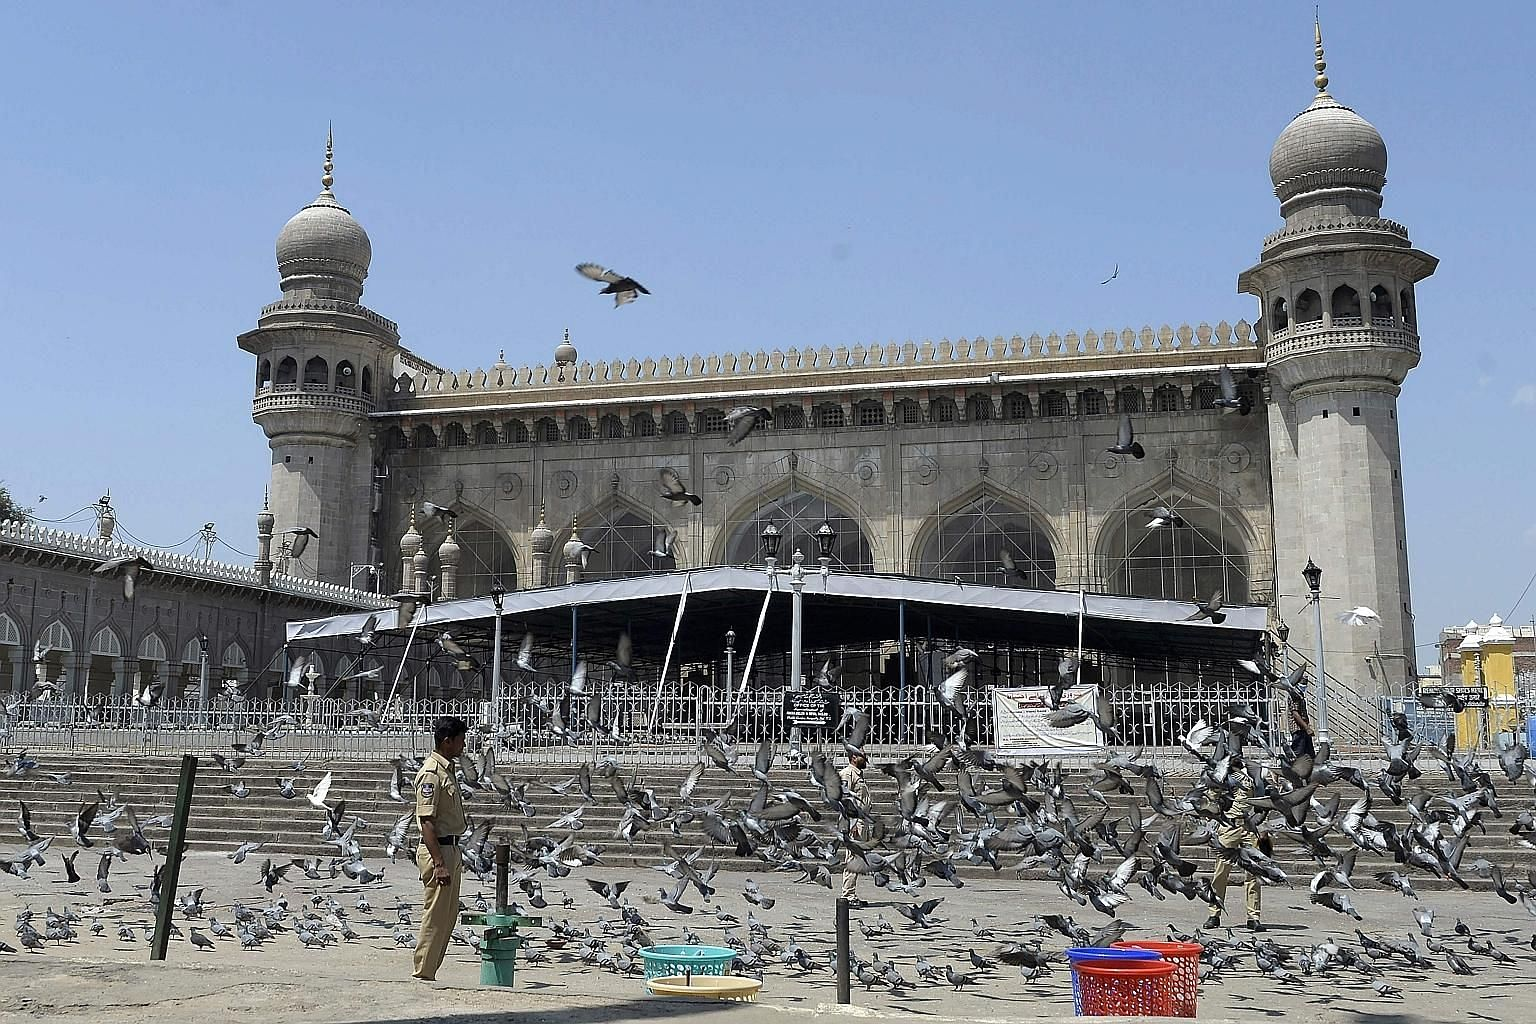 A policeman keeping watch outside Mecca Masjid in Hyderabad yesterday during a 14-hour nationwide curfew imposed to curb the spread of the coronavirus. PHOTO: AGENCE FRANCE-PRESSE